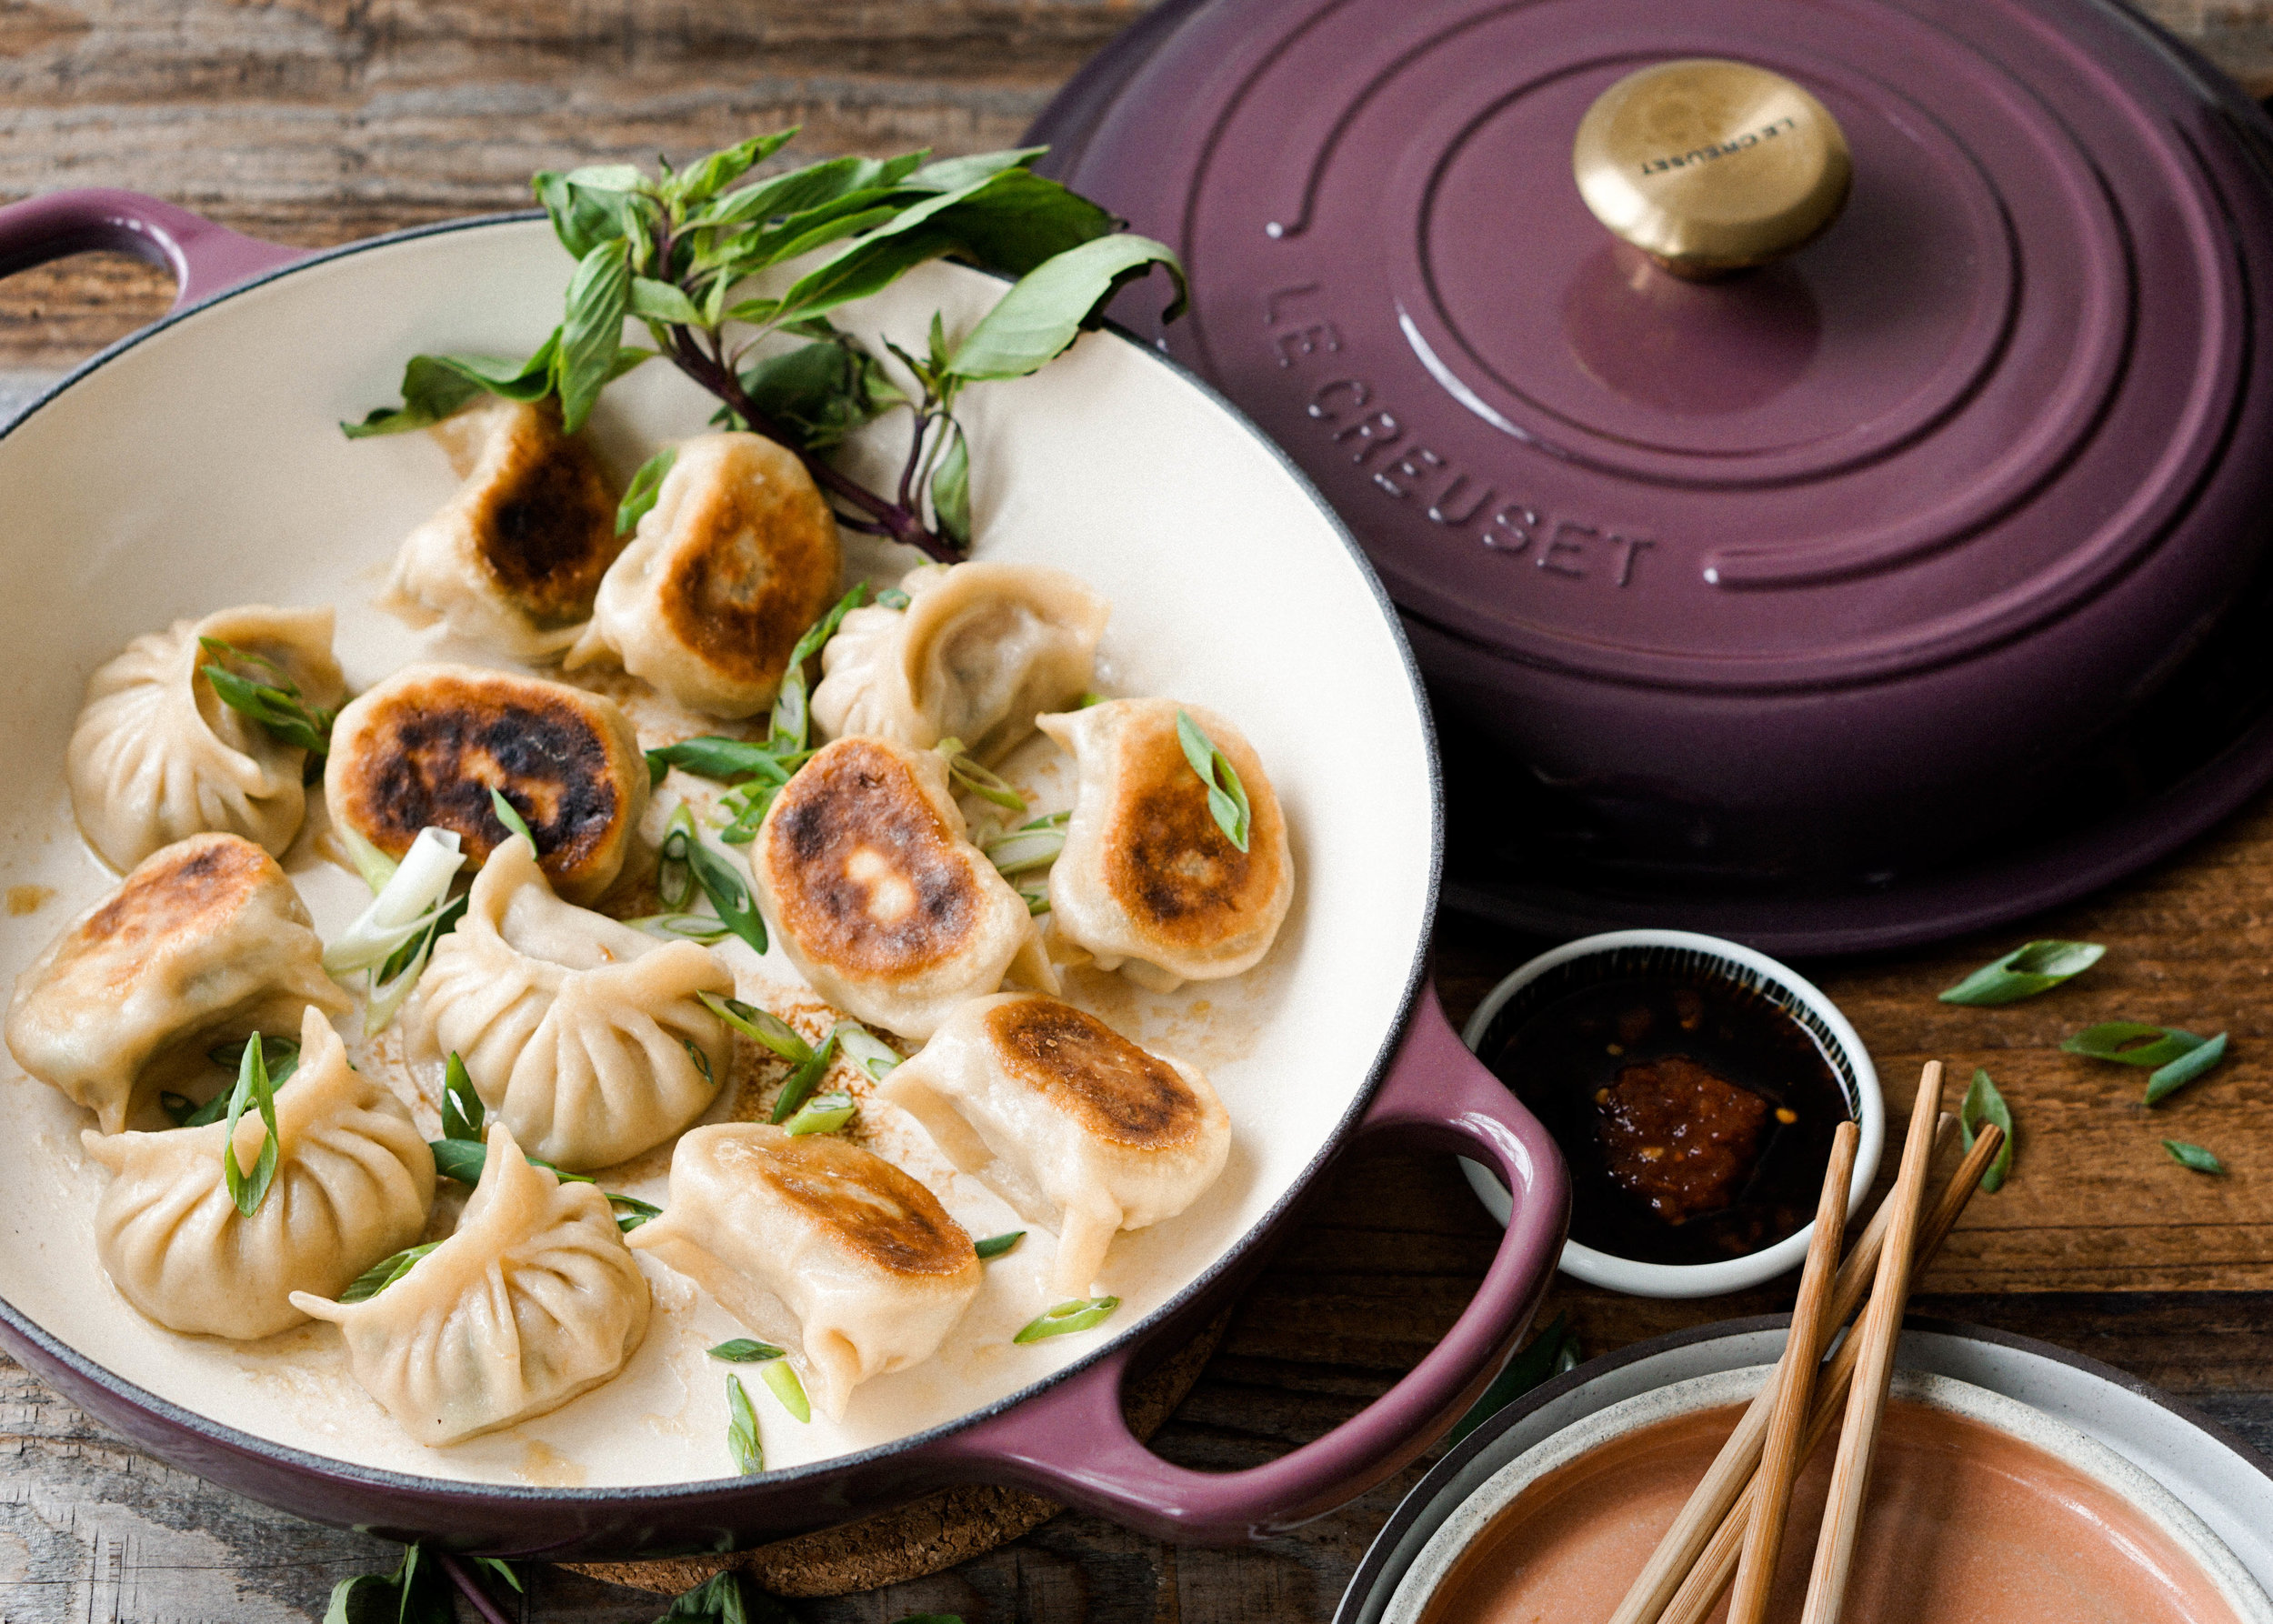 Basil Chicken Dumplings - Eat Cho Food